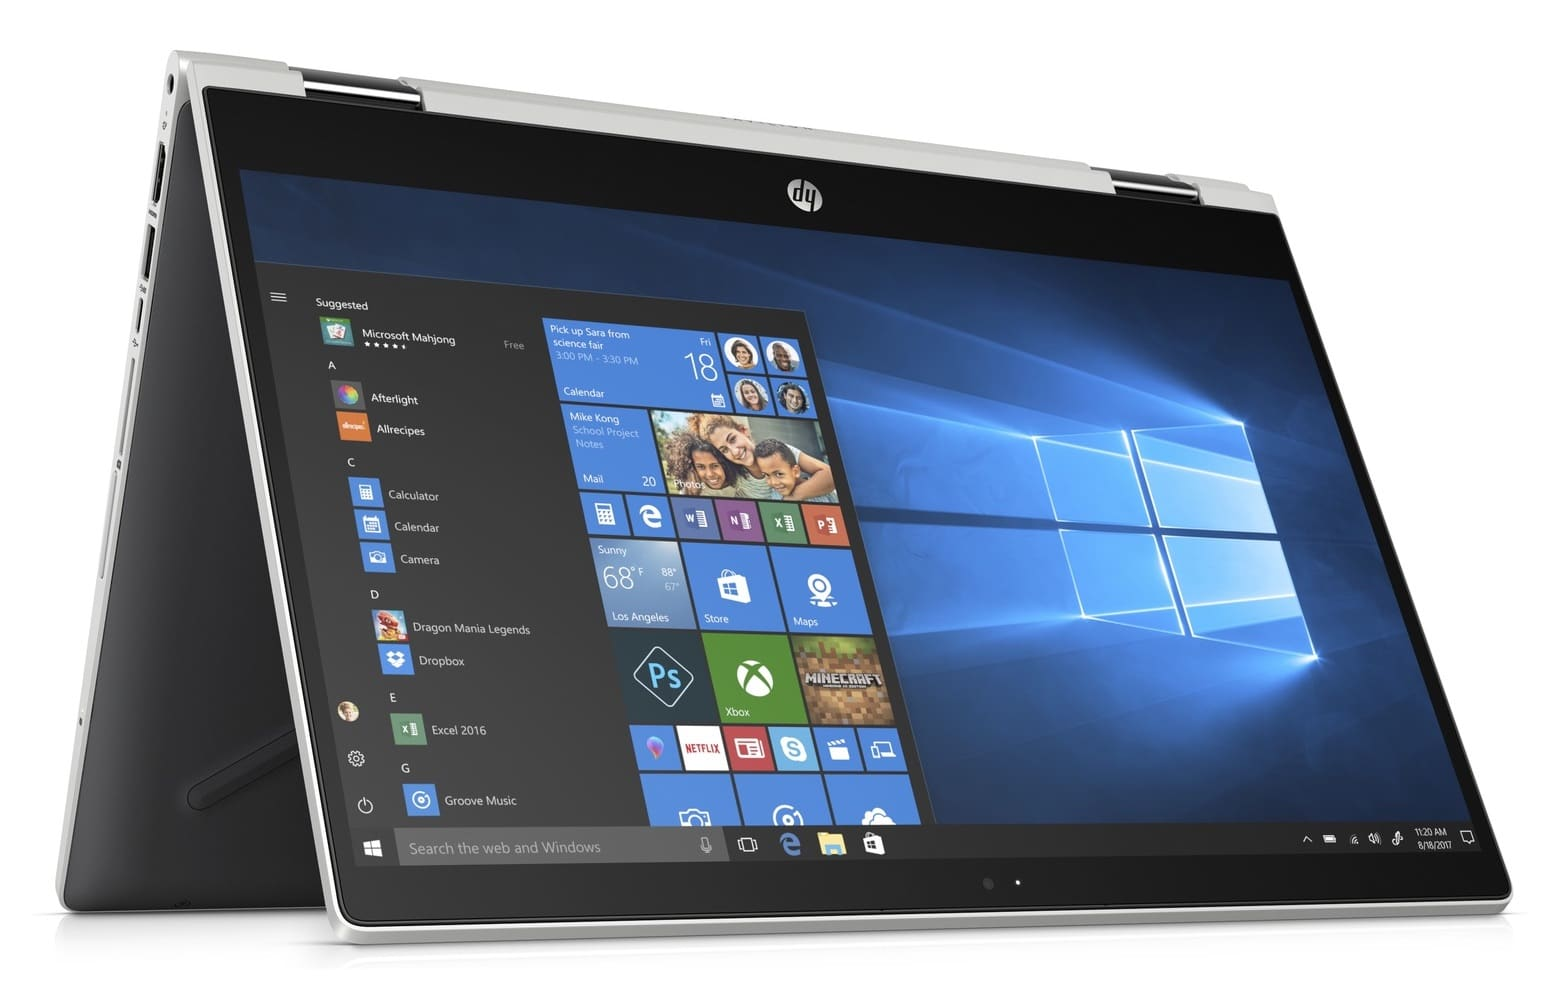 HP Pavilion x360 14-cd0002nf, 14 pouces Tablette i3-8130U (479€)